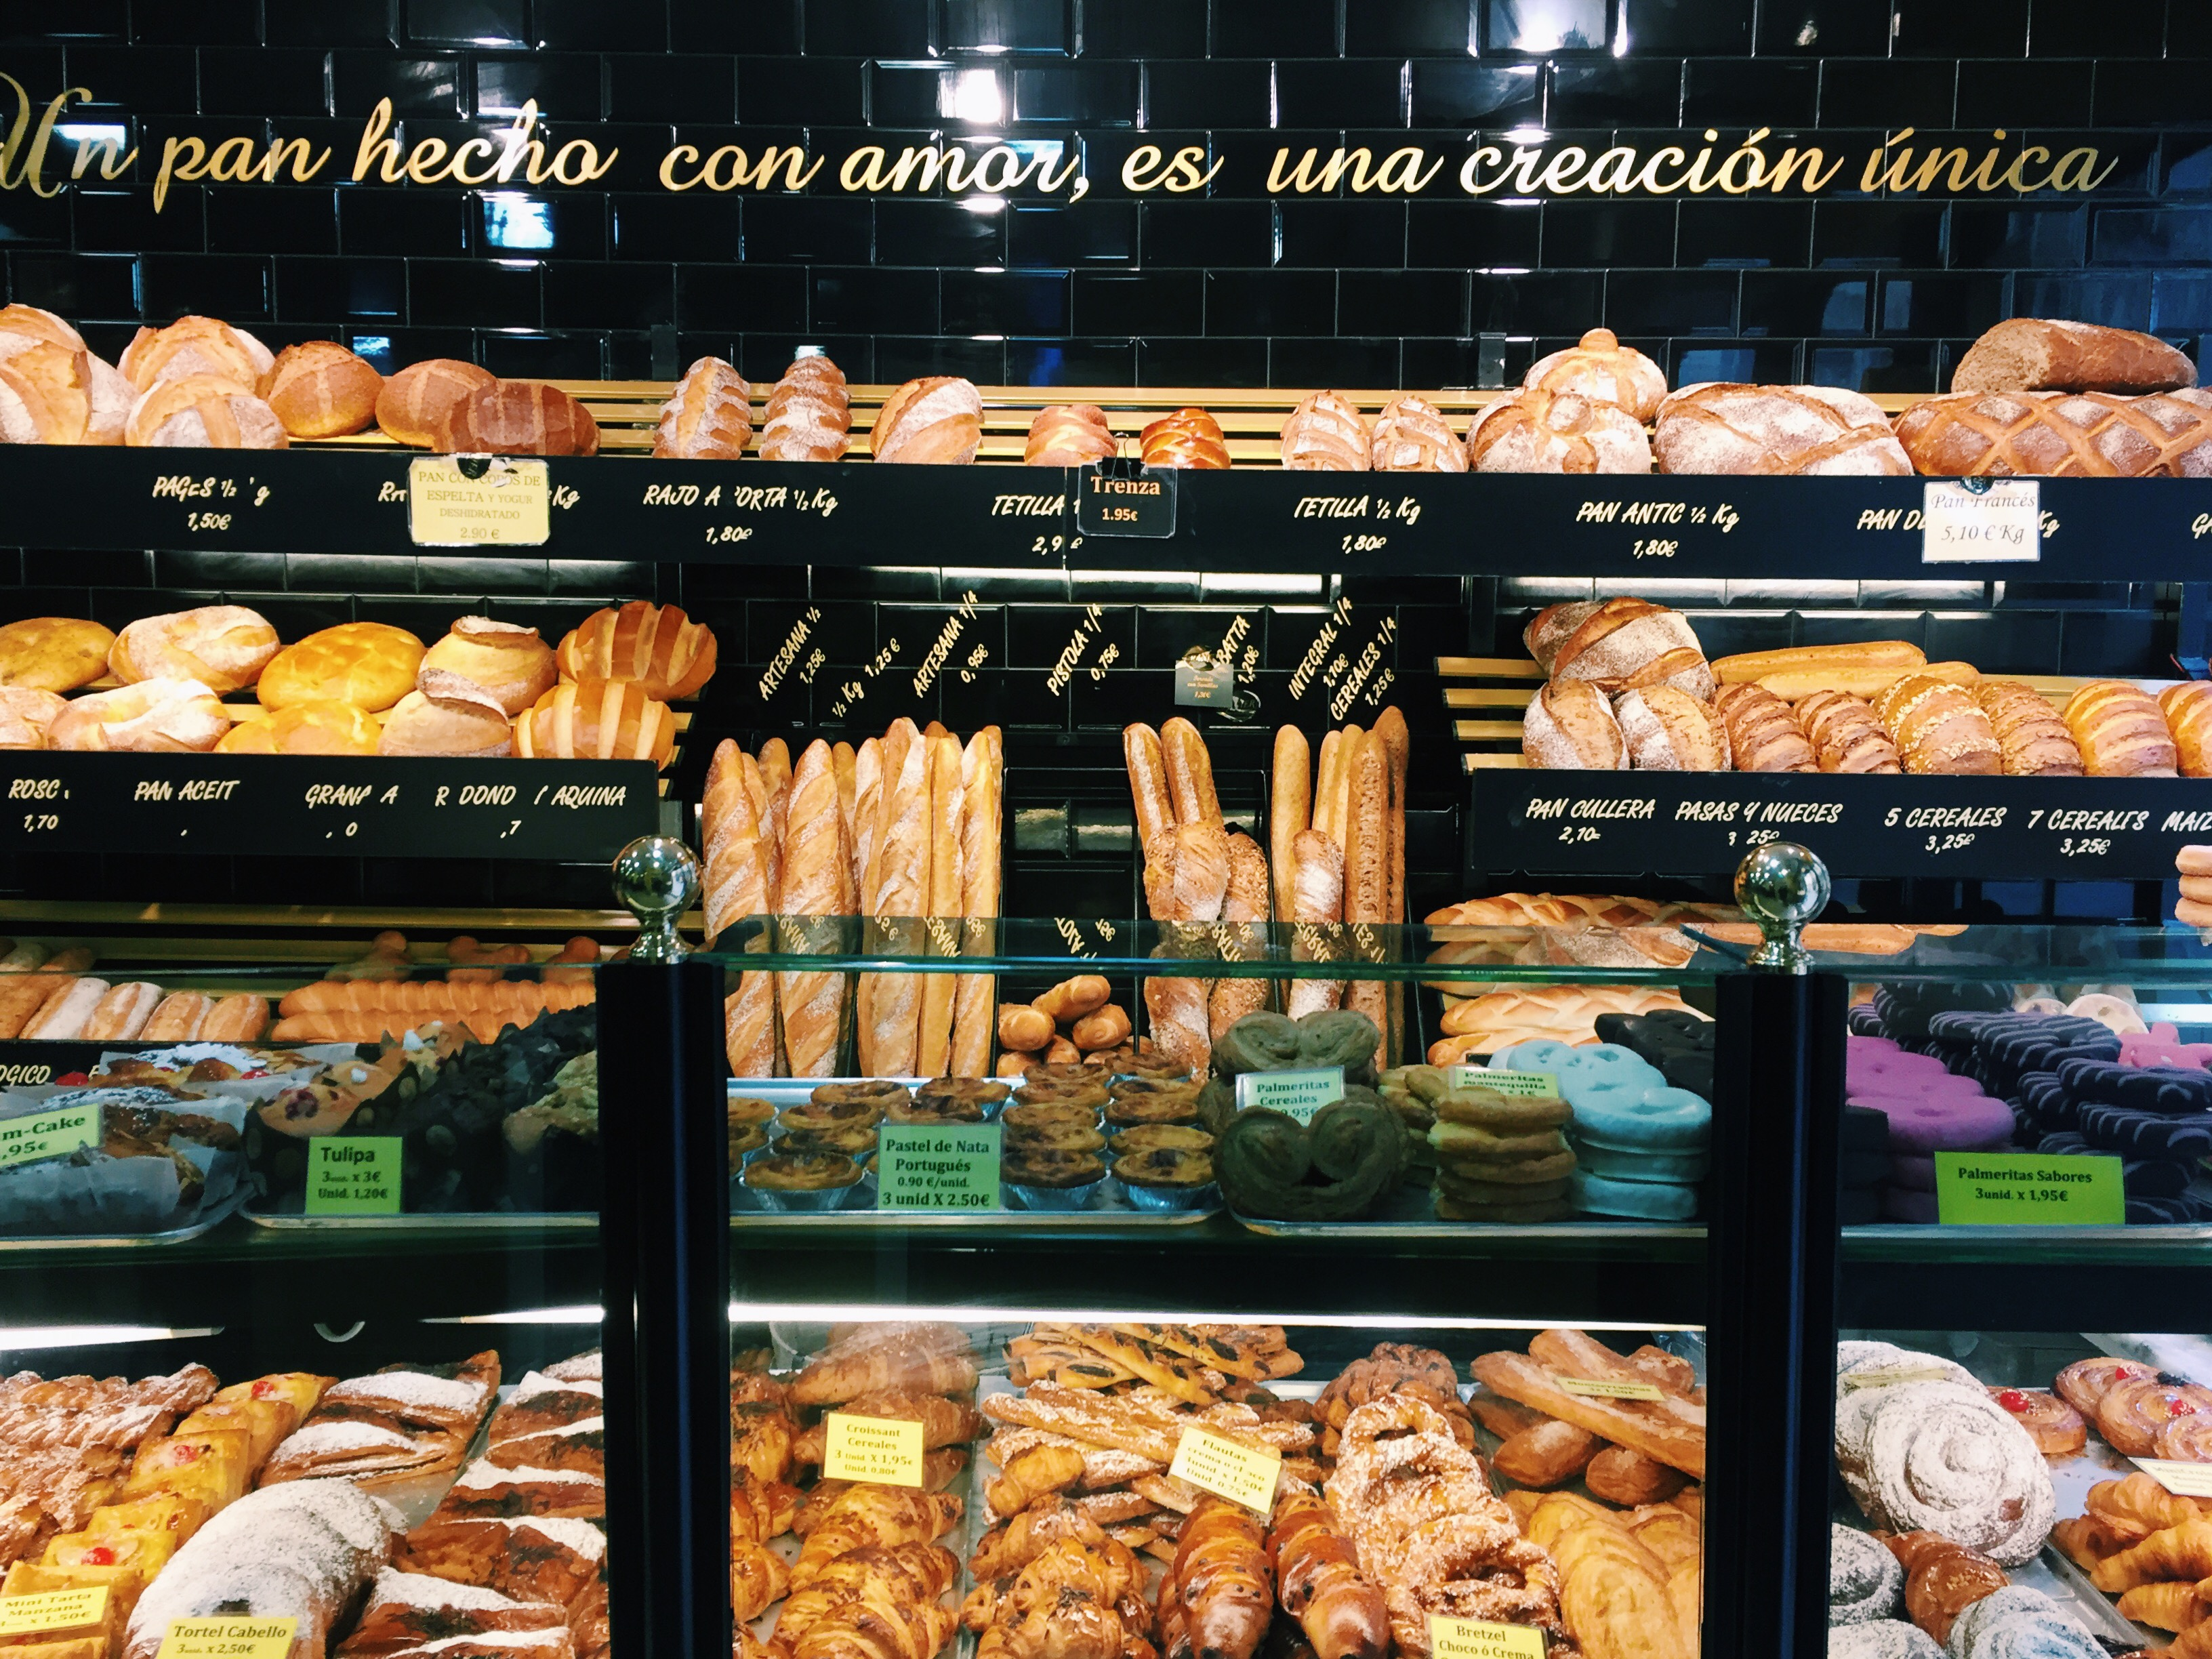 Proctor en Segovia buys freshly baked bread at a local bakery